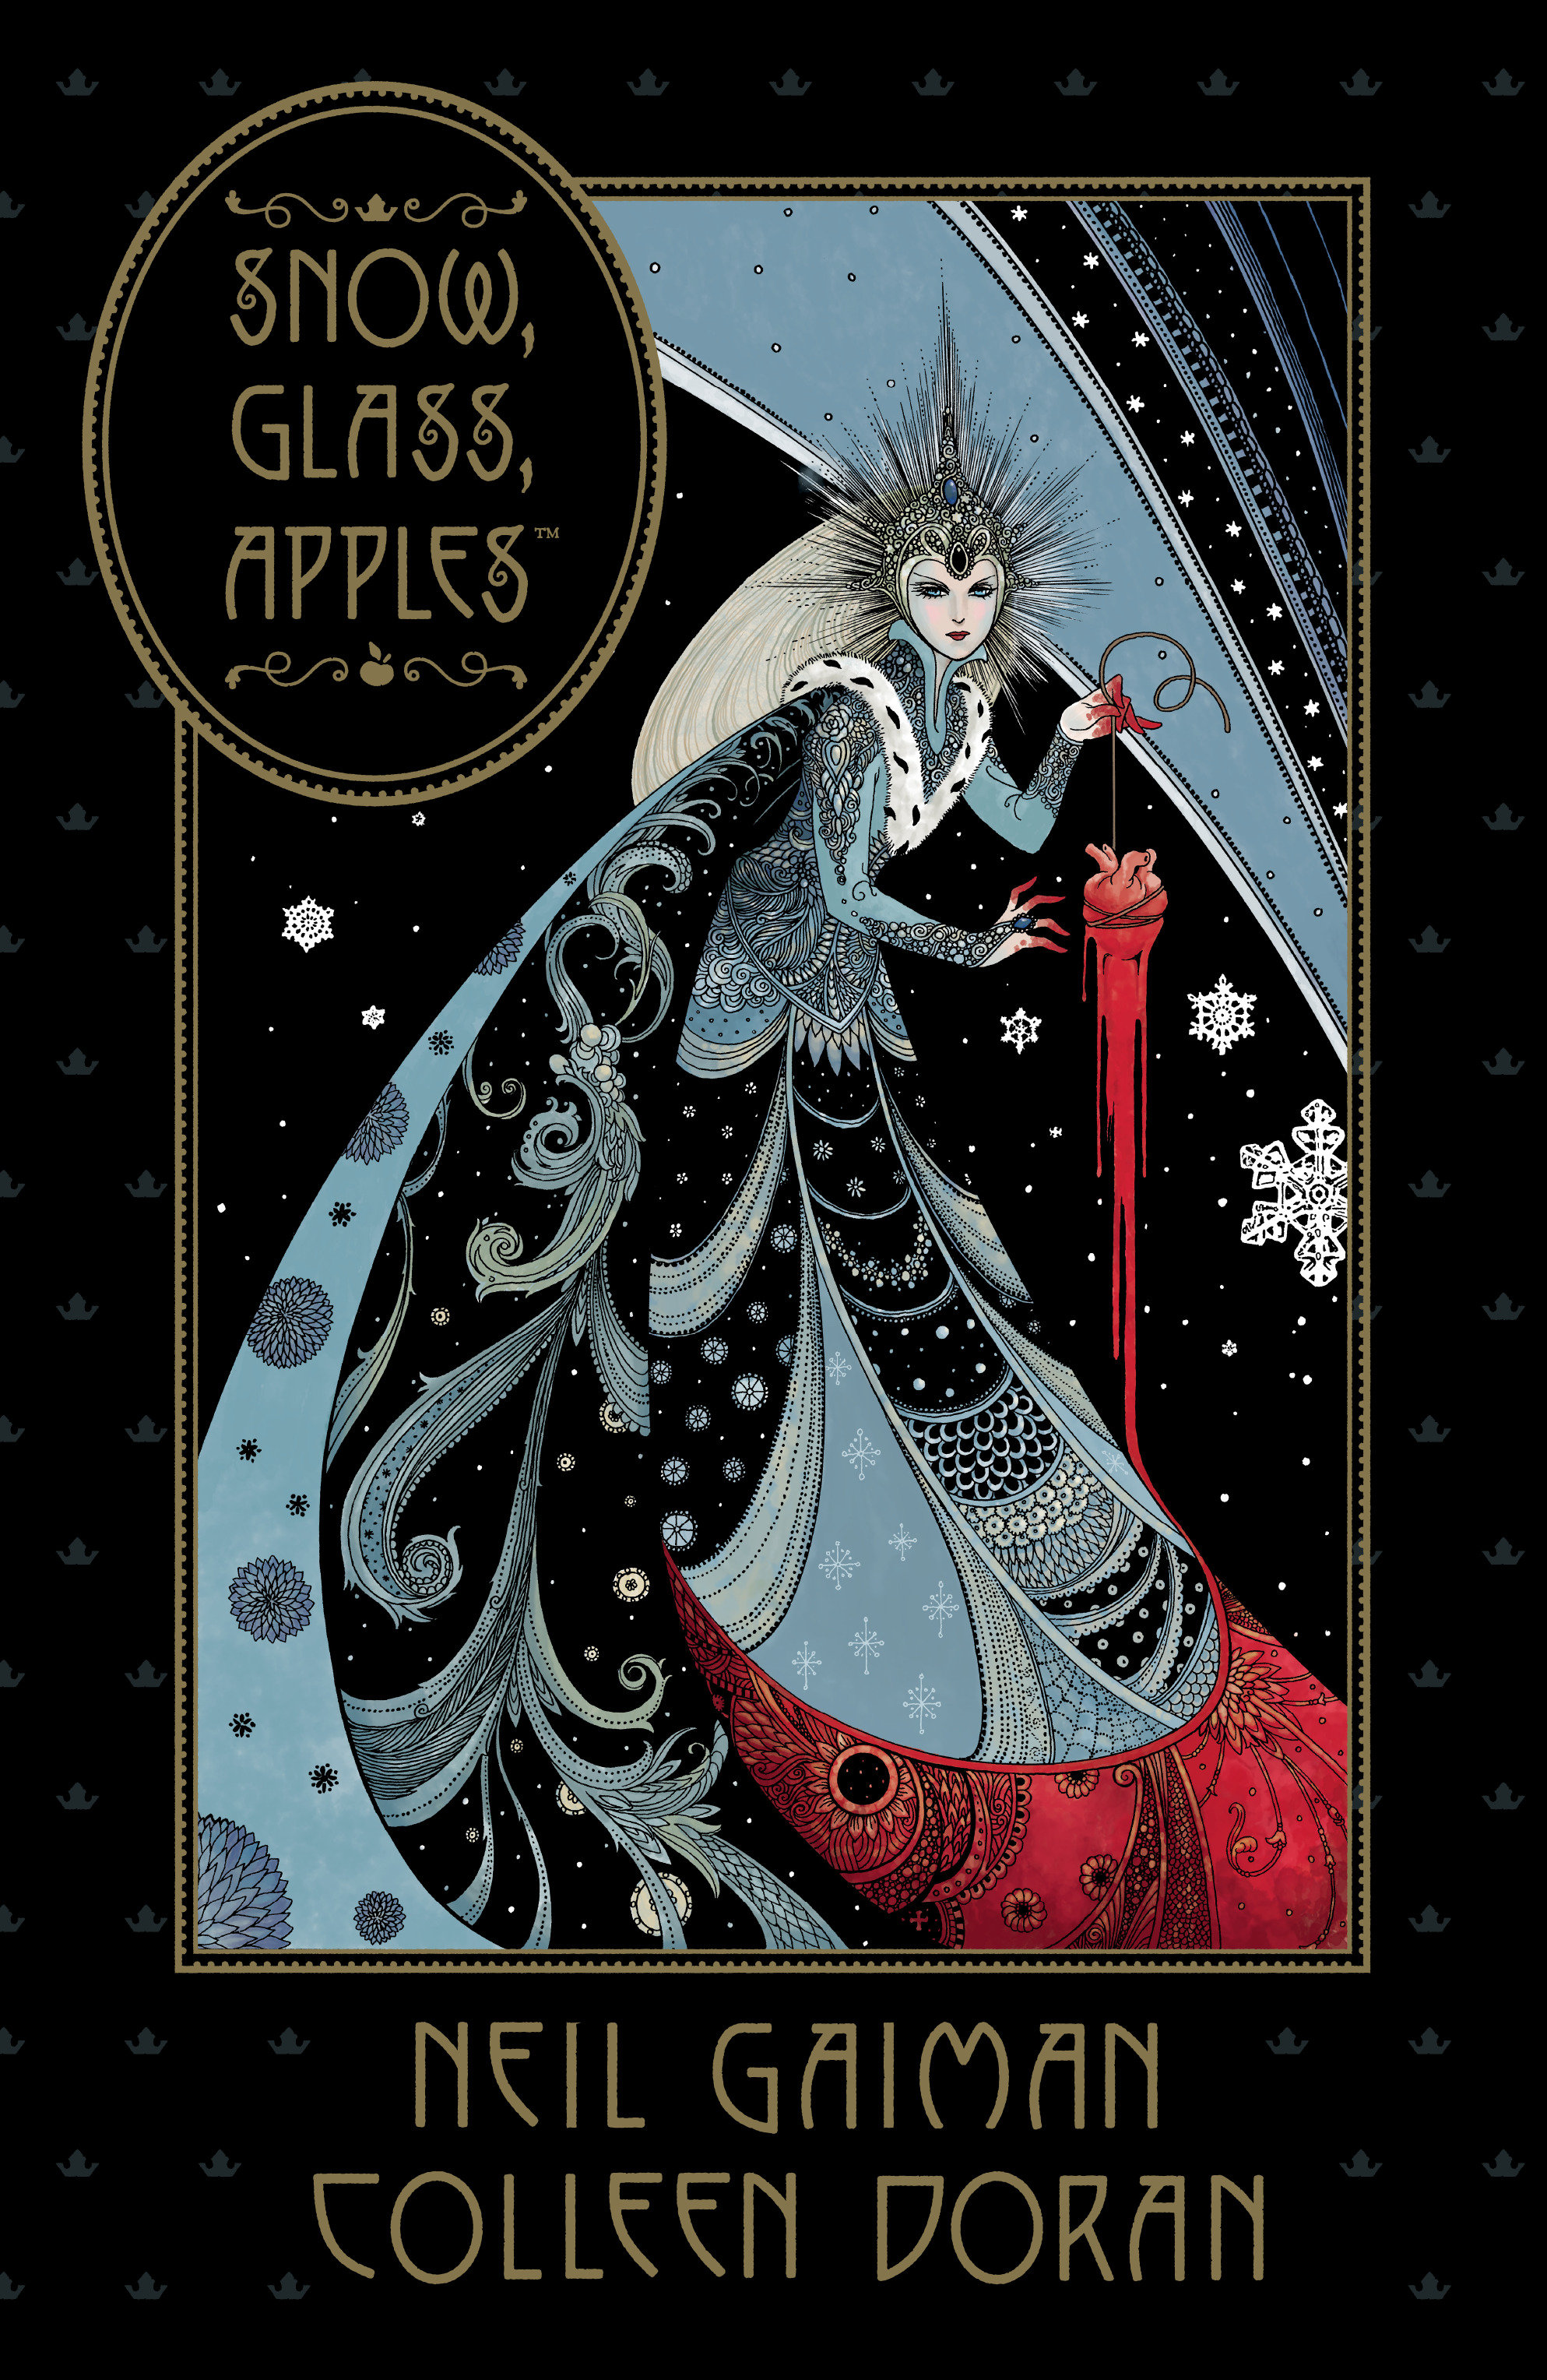 Cover Image of Neil Gaiman's Snow, Glass, Apples